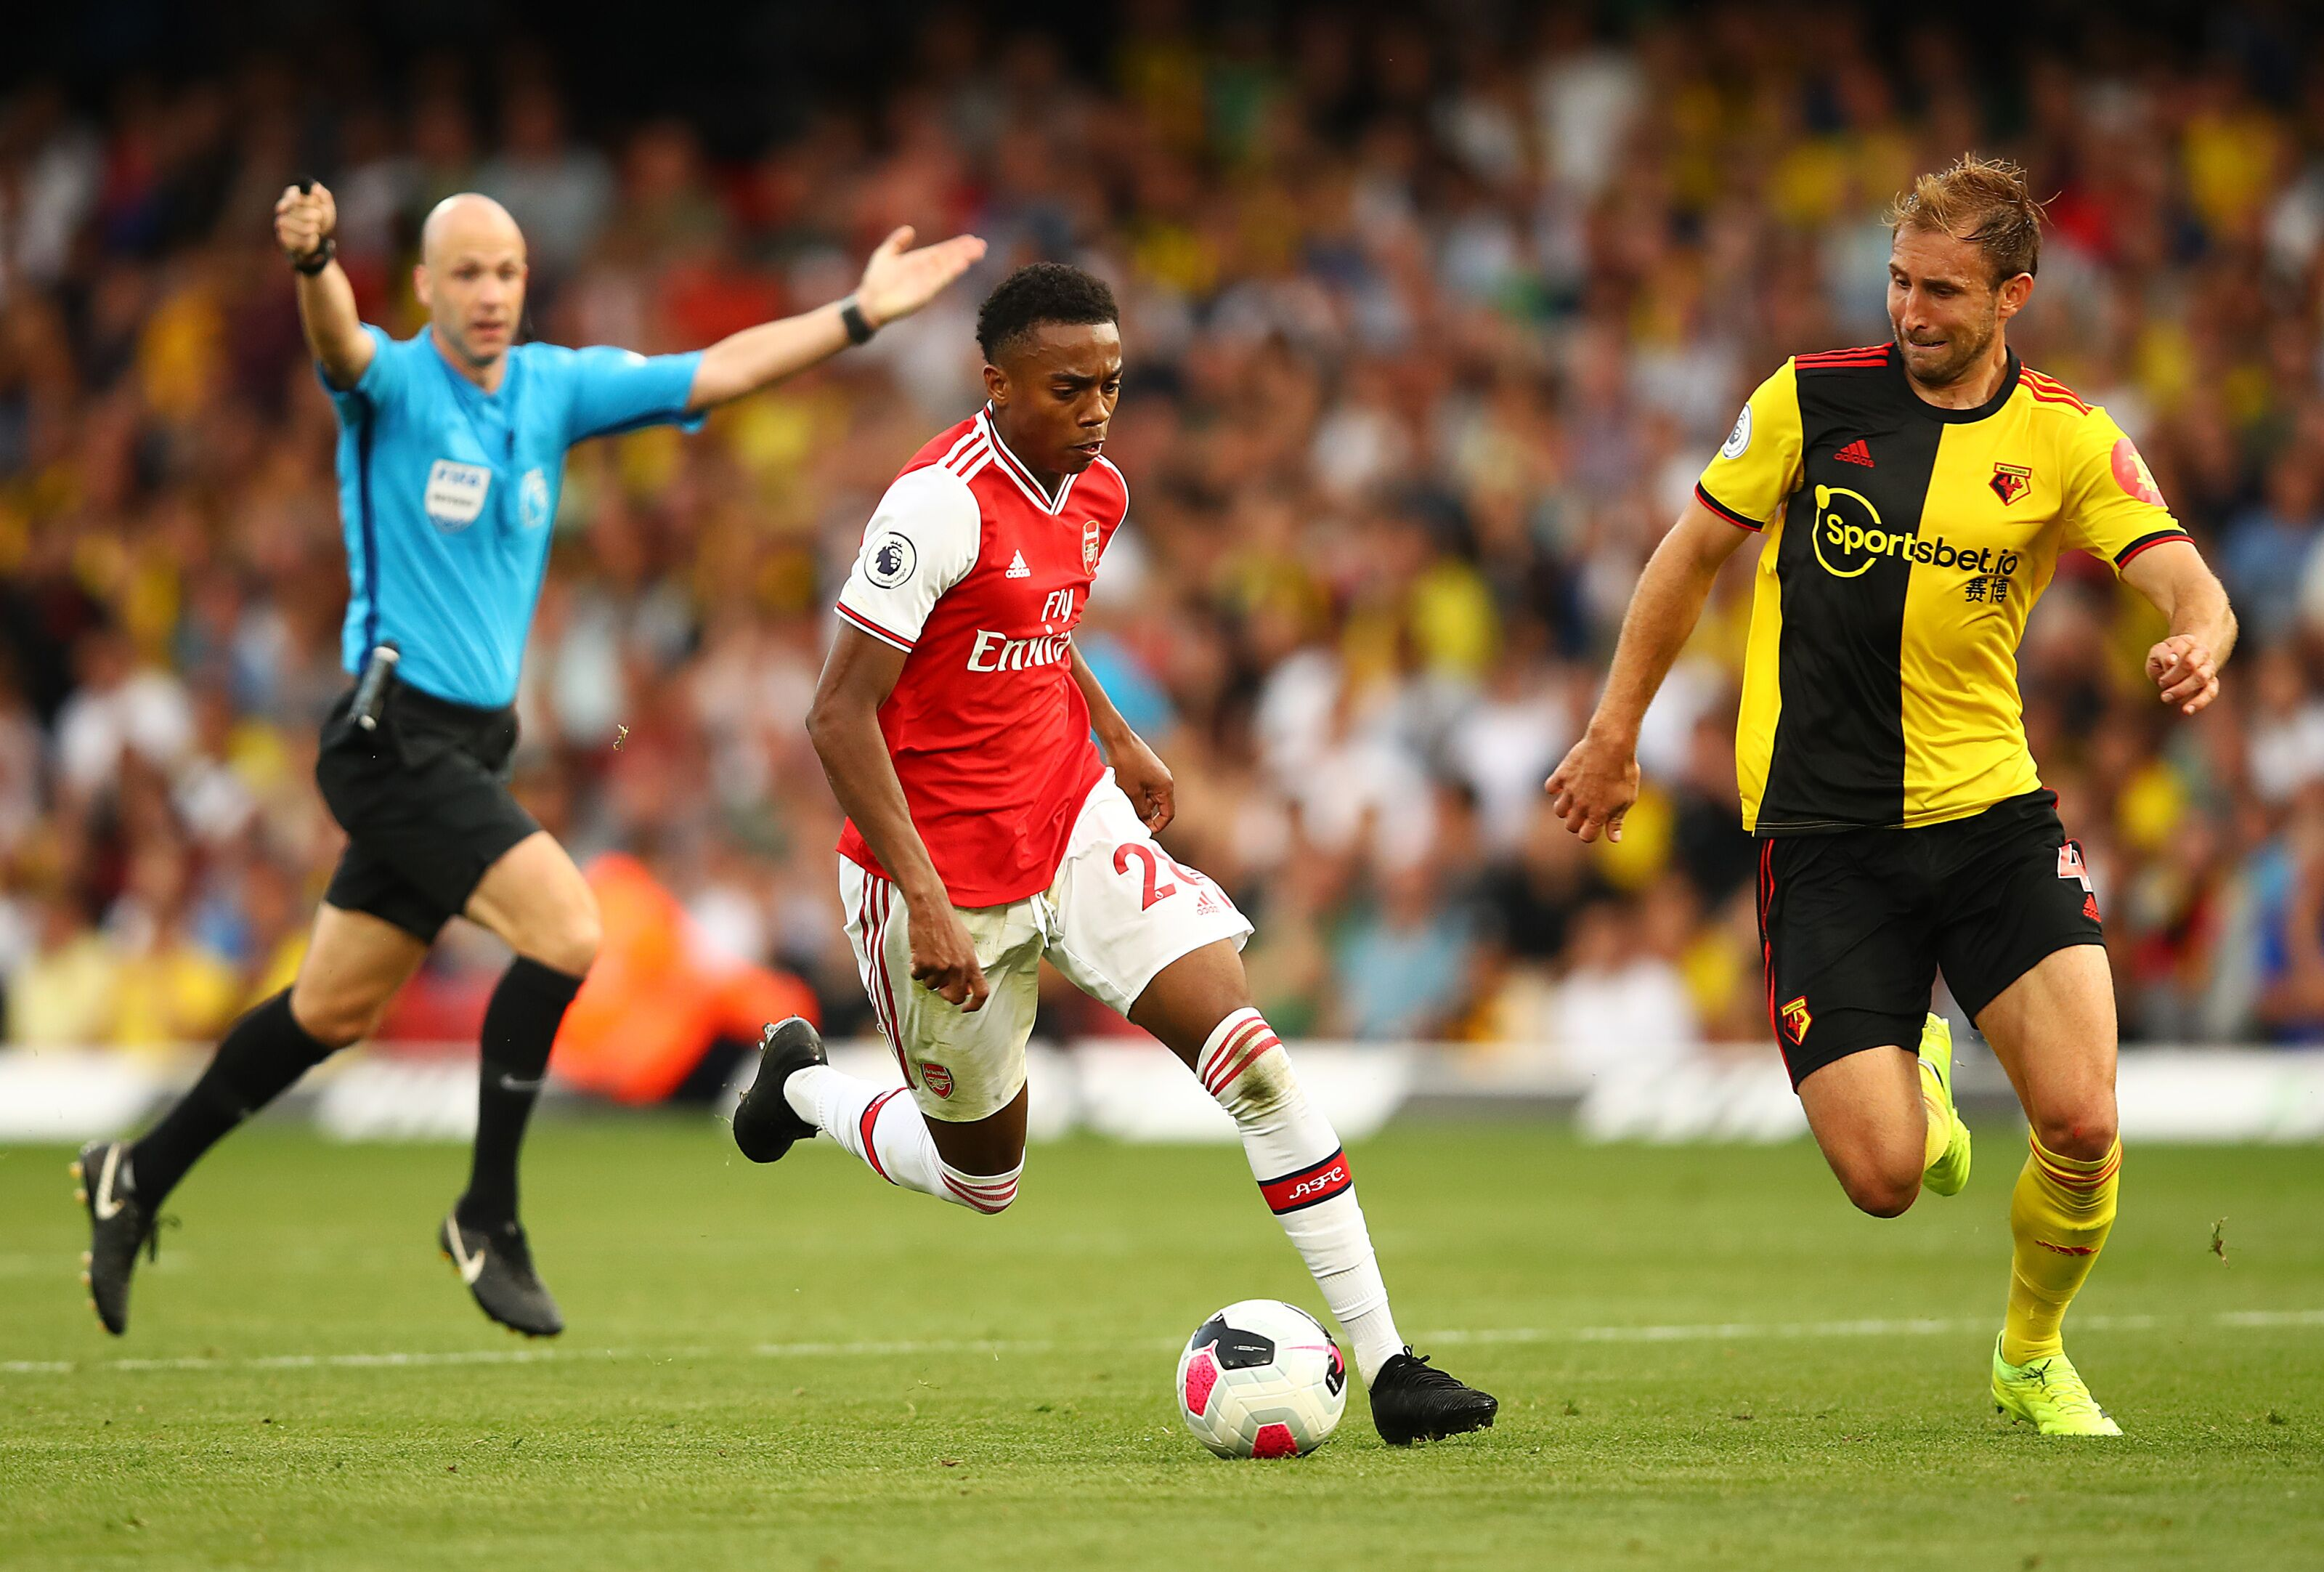 Arsenal: Surely the Premier League awaits for Joe Willock